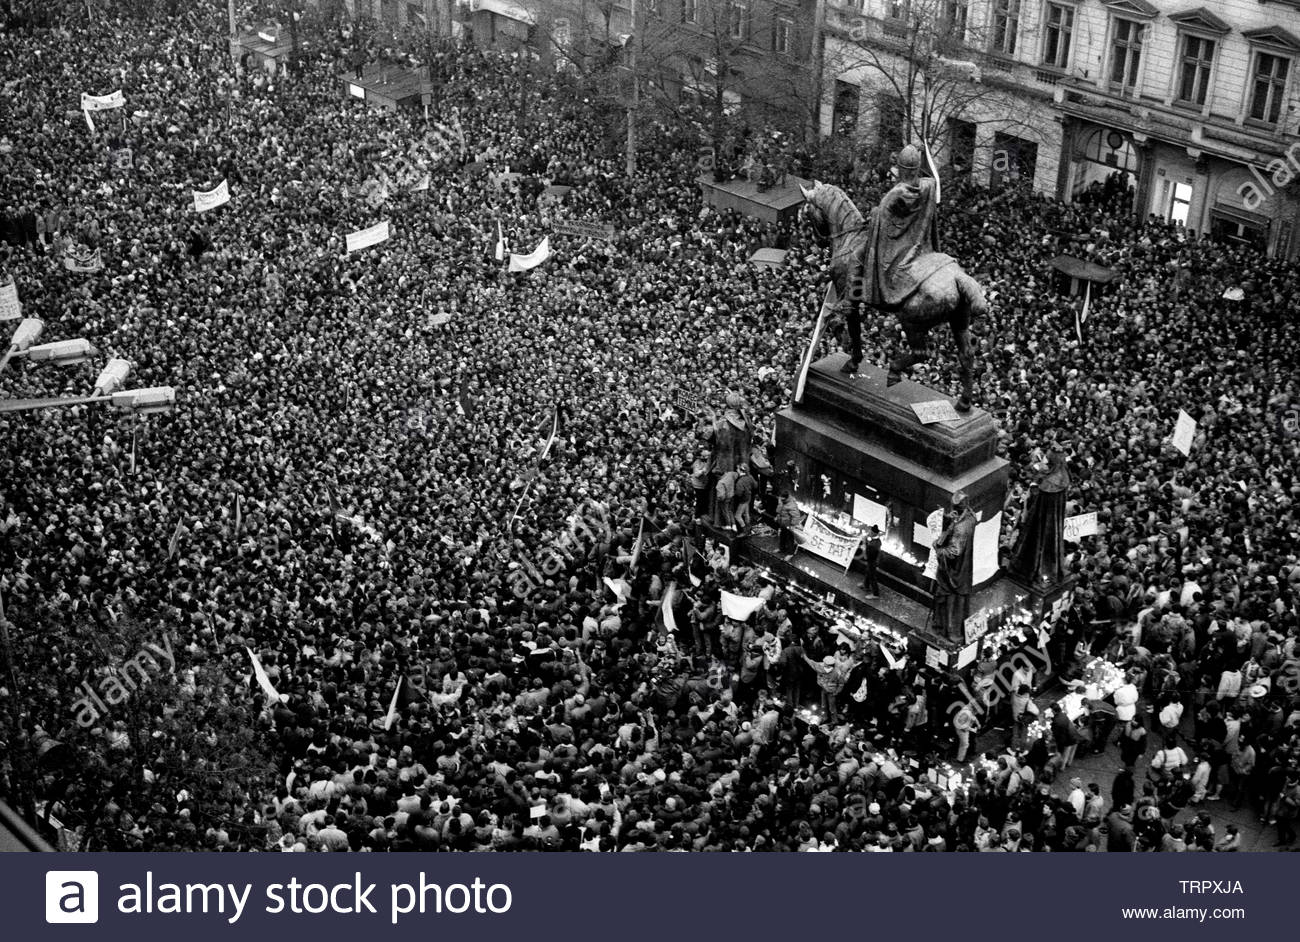 Czechoslovakia, Prague,1989 during the Velvet Revolution, the fall of communism in Eastern Europe. Celebrating the fall of the communist government by in Wenceslas Square around the statue of King Wenceslas.. COPYRIGHT PHOTOGRAPH BY BRIAN HARRIS  © 07808-579804 Stock Photo